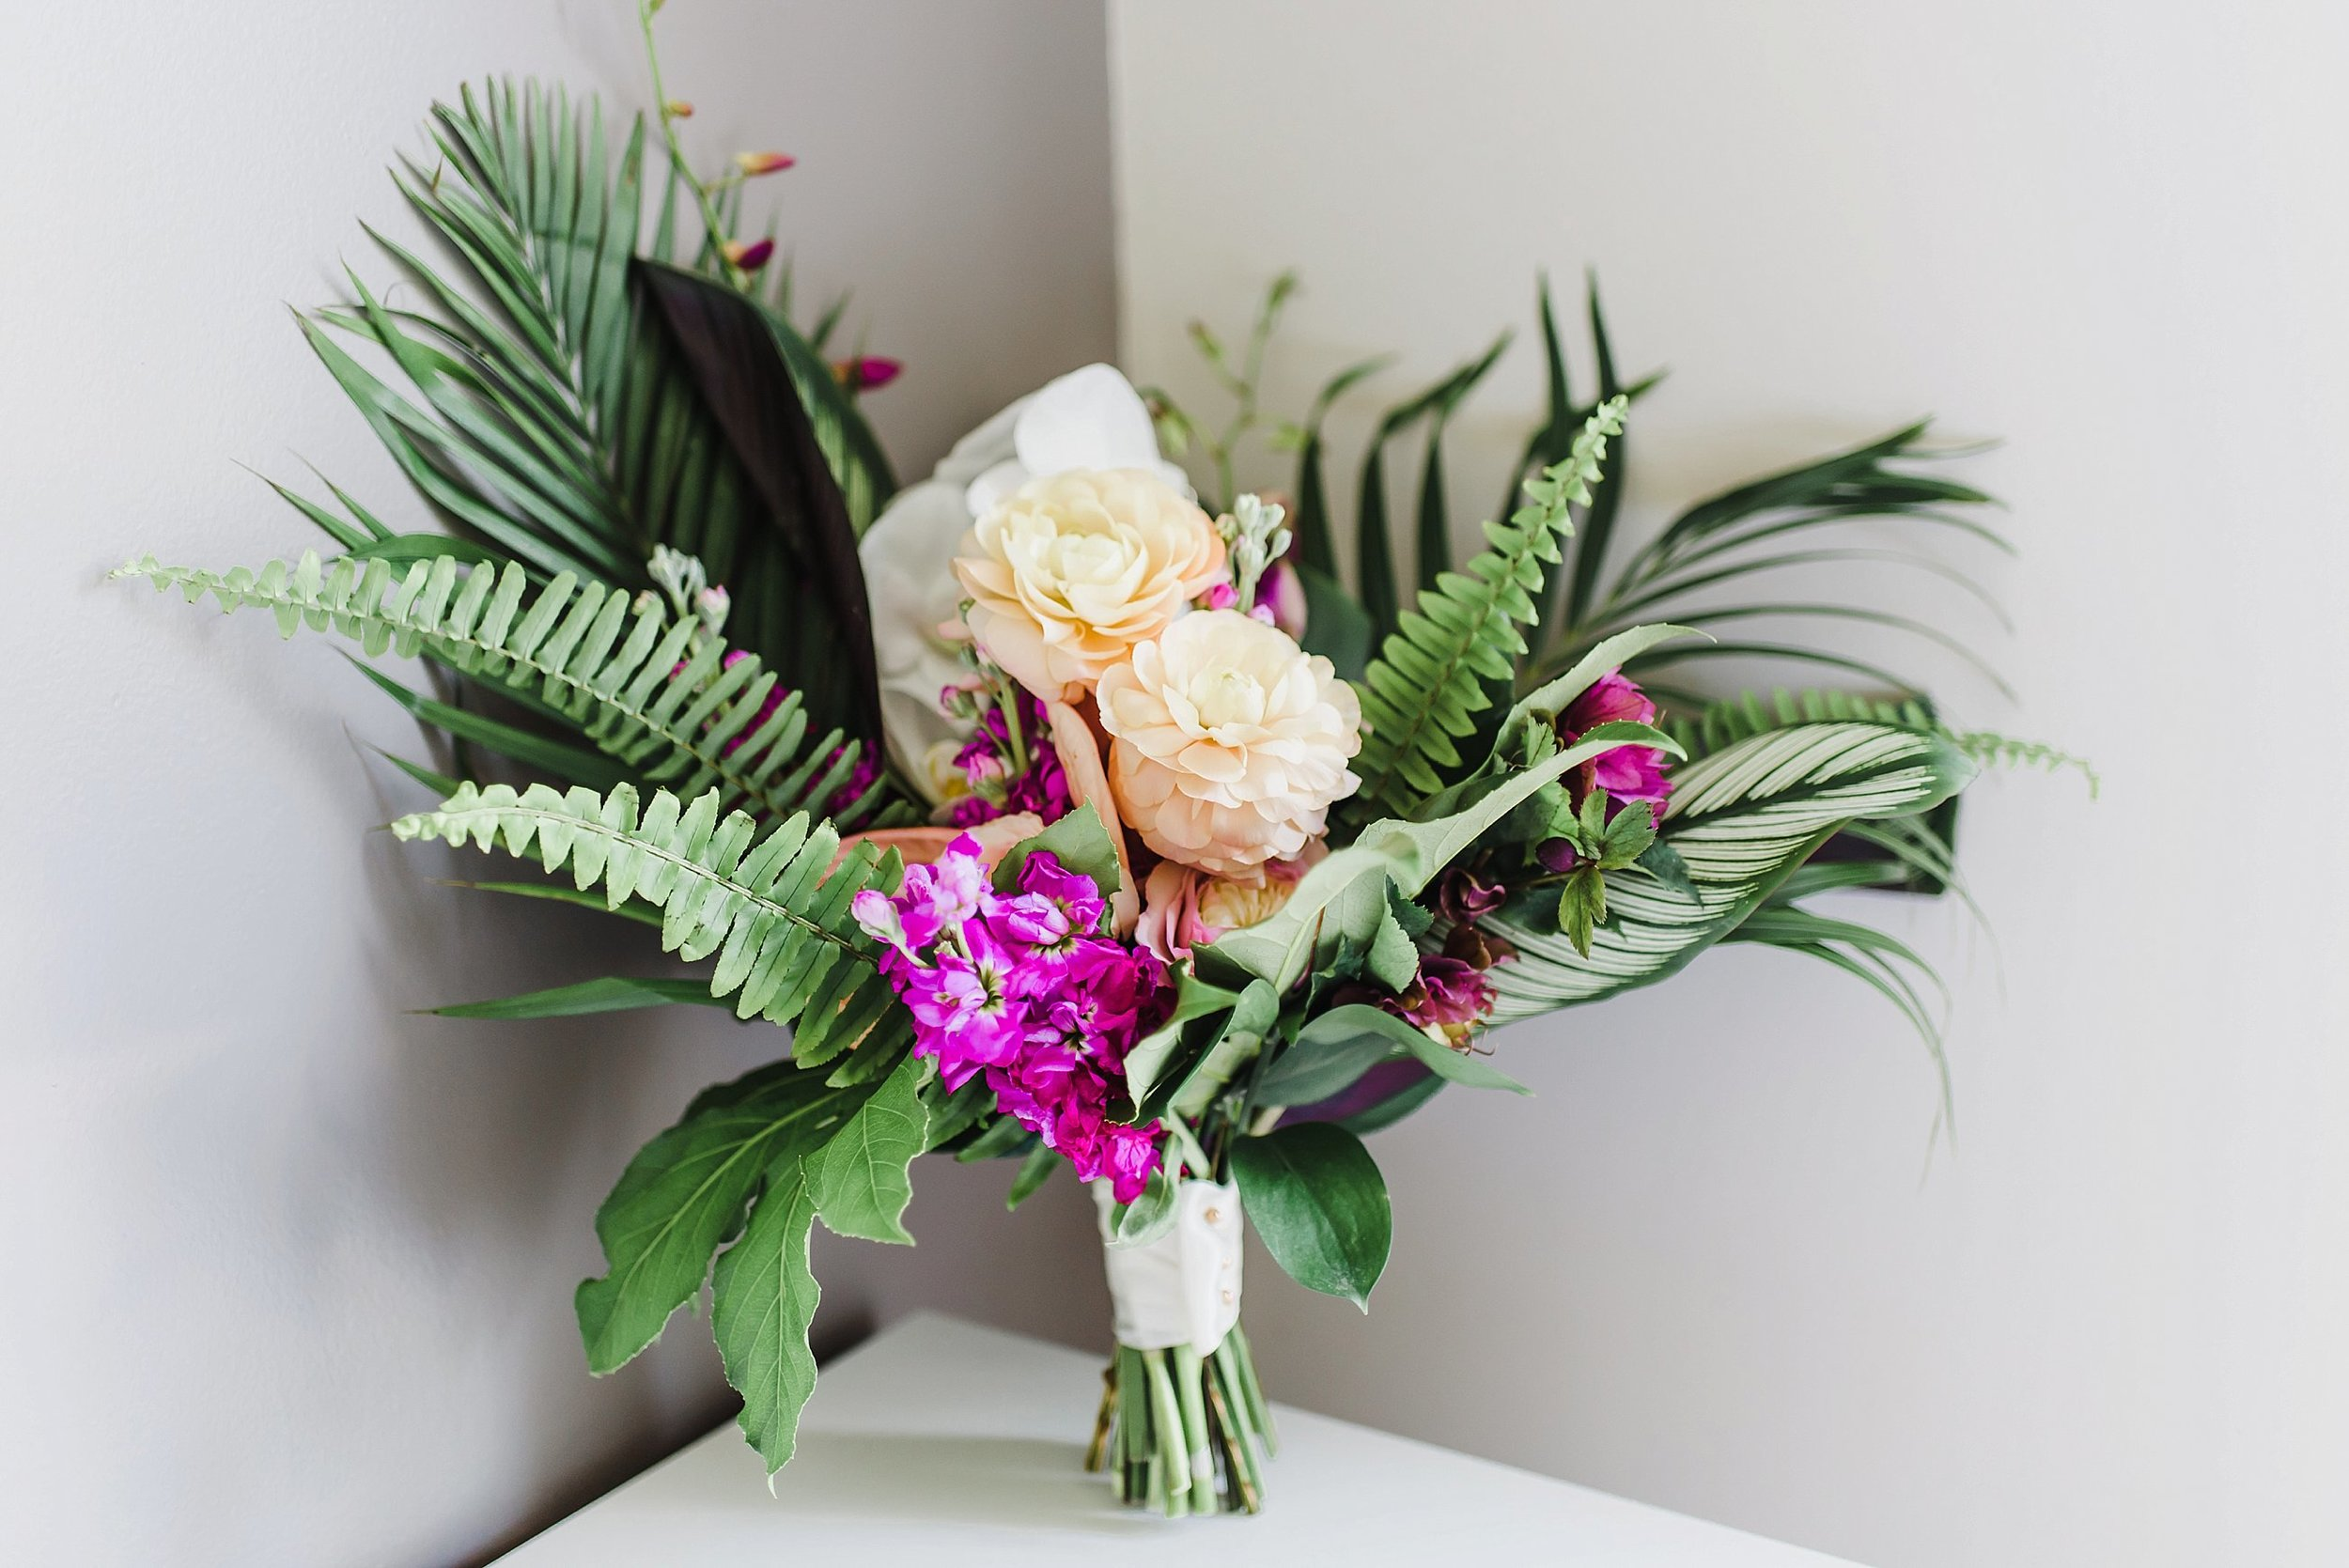 They brought a Caribbean flavour to their wedding design by incorporating tropical greenery and florals to the bridal bouquet.